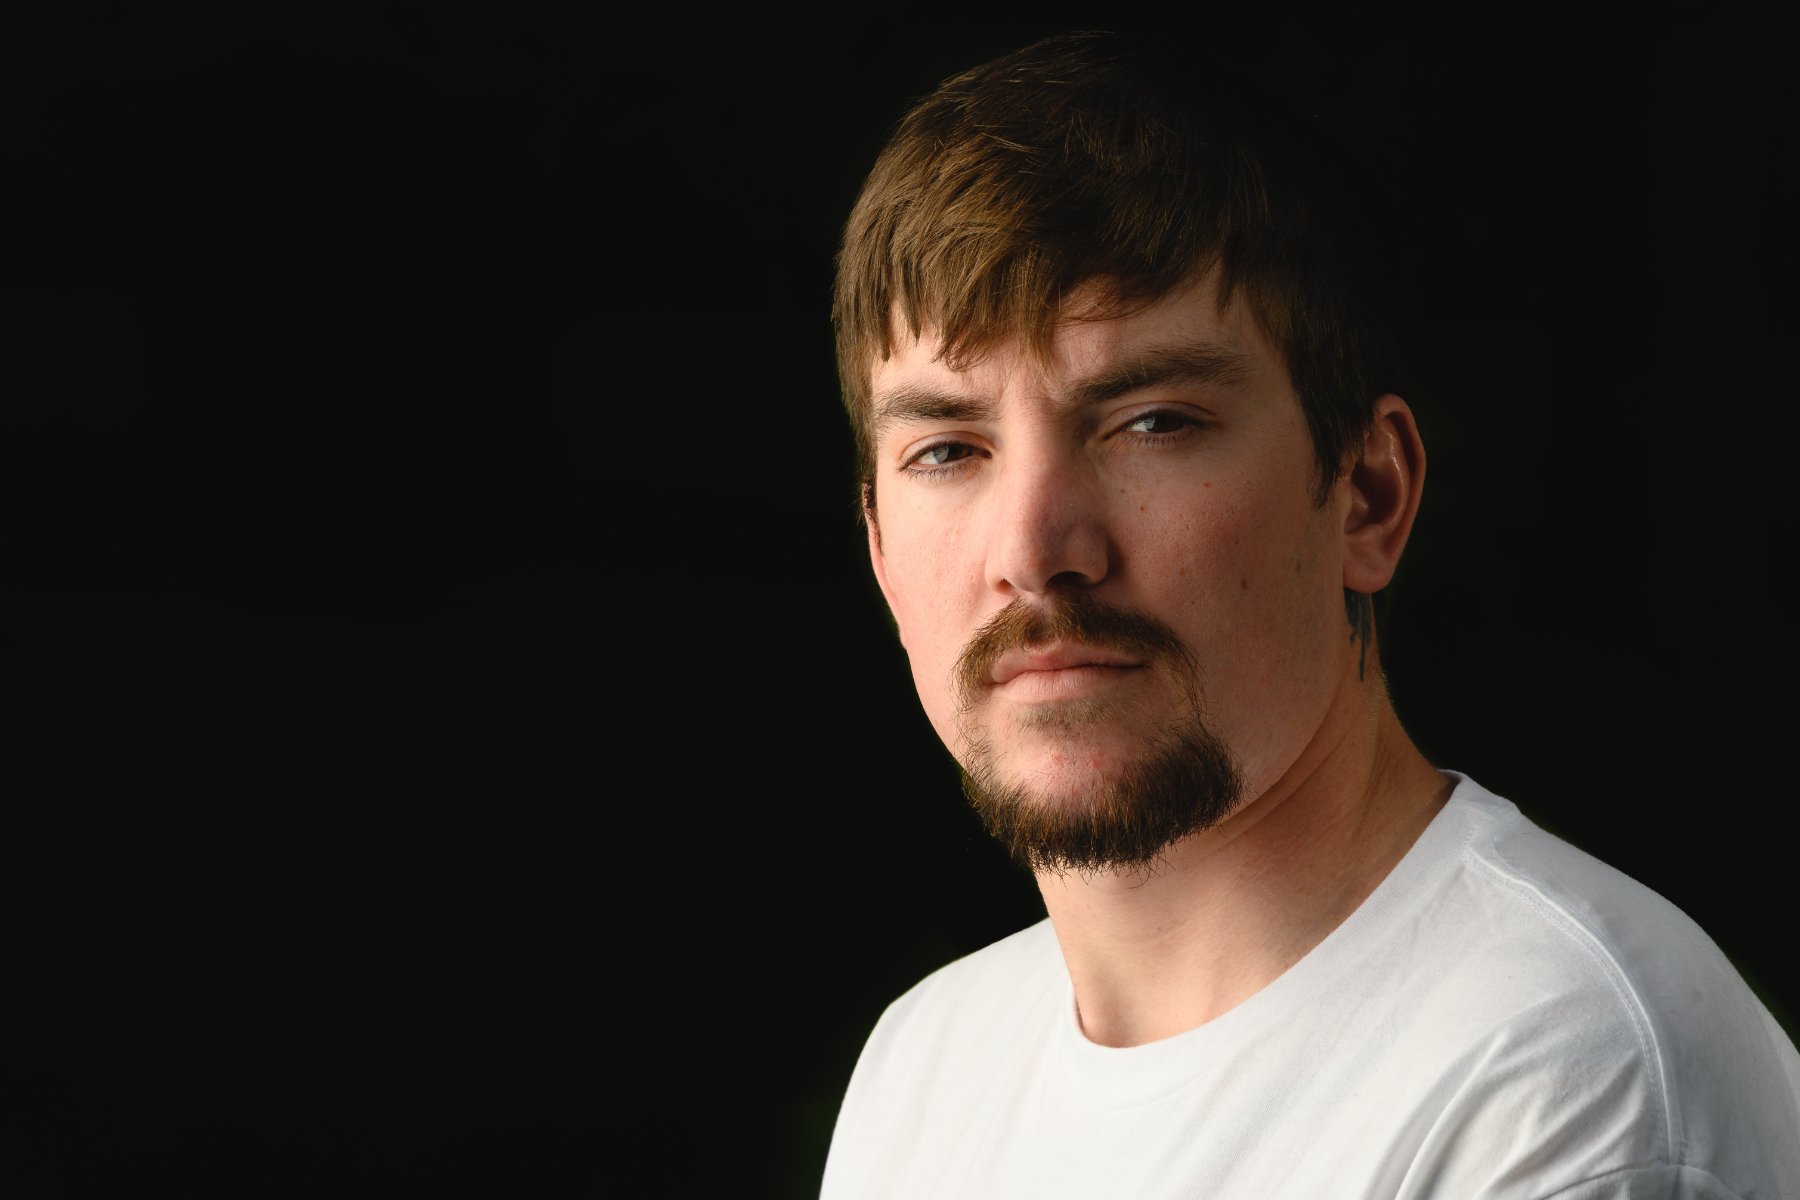 Cameron Waters, a white adult male with brown hair, wearing a white shirt stares straight into the camera with a black background.